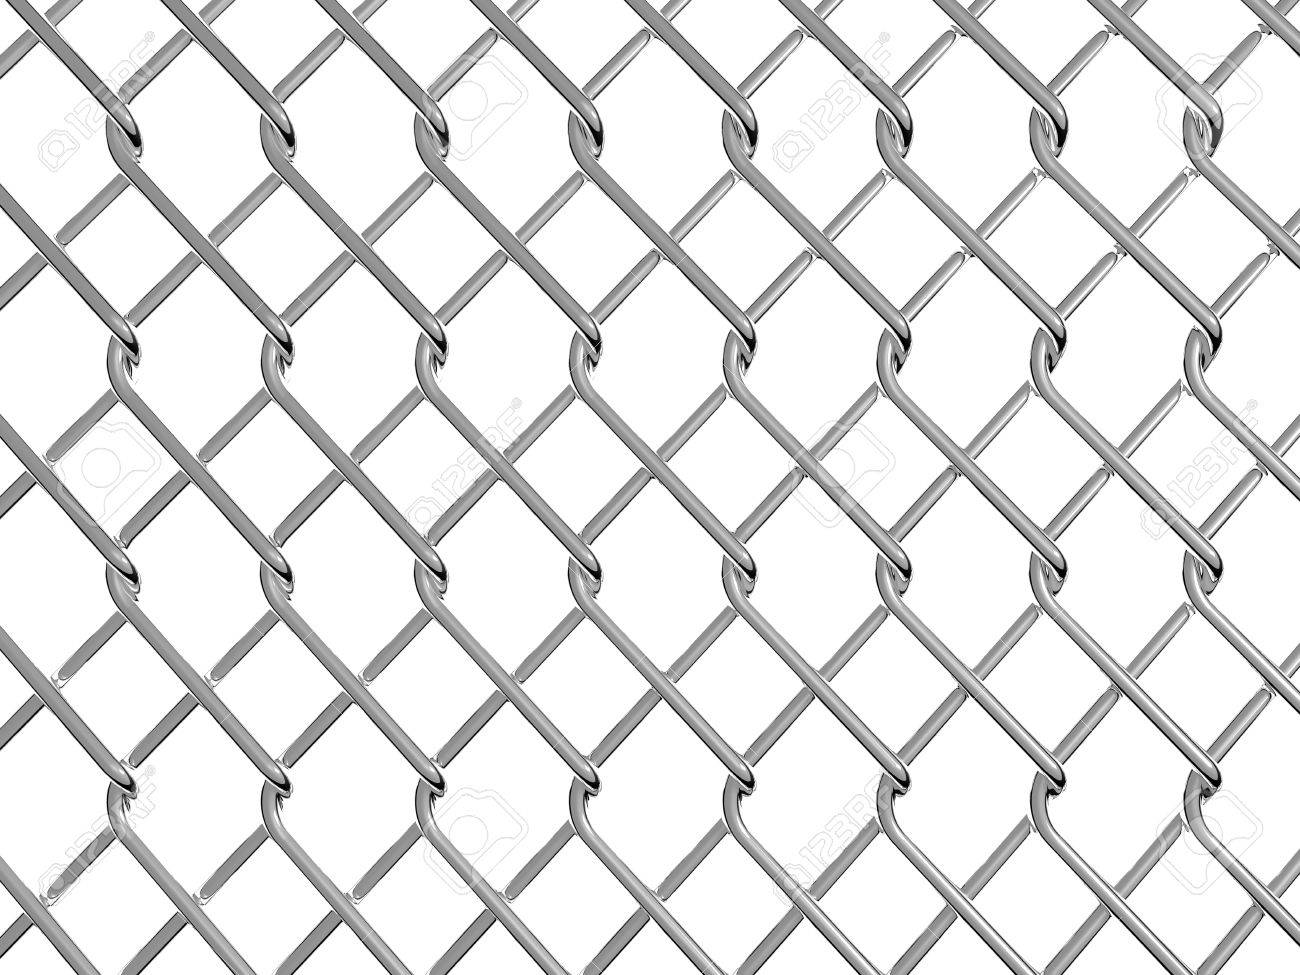 Chain Link Fence Drawing 1,654 chain link fence stock illustrations, cliparts and royalty